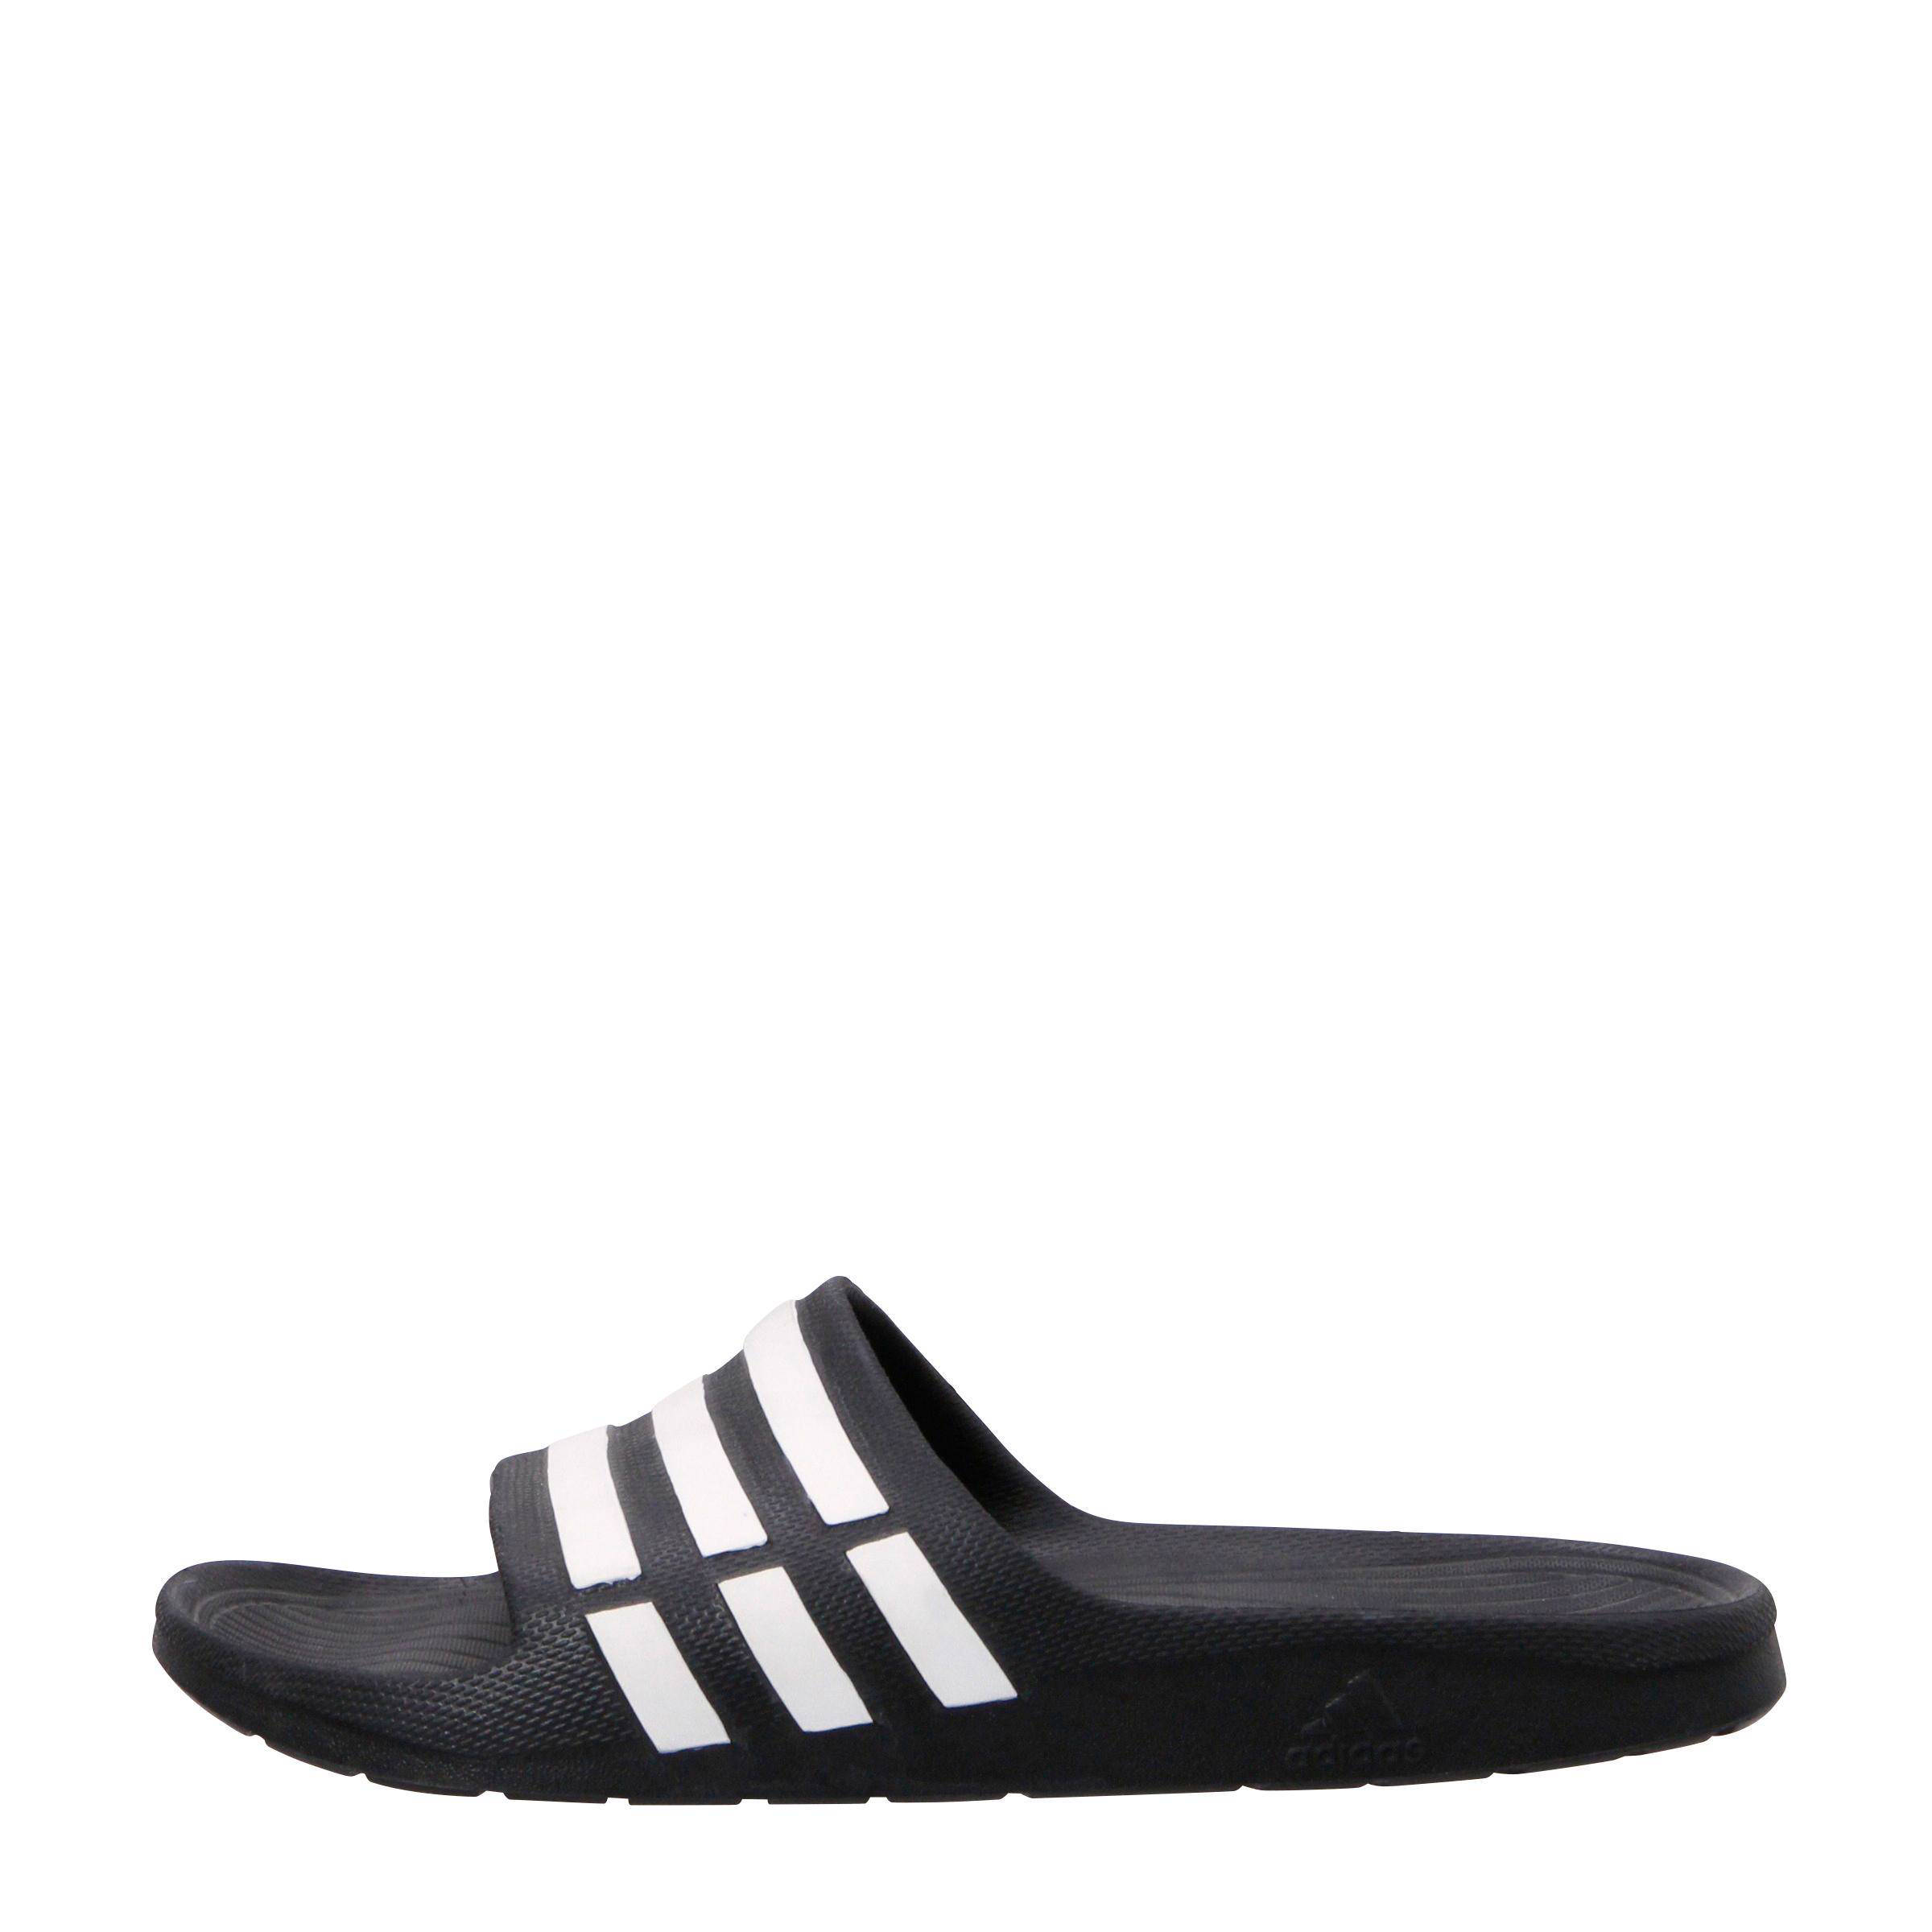 Adidas 44 Adidas Maat Slippers Heren Slippers CCHwa7